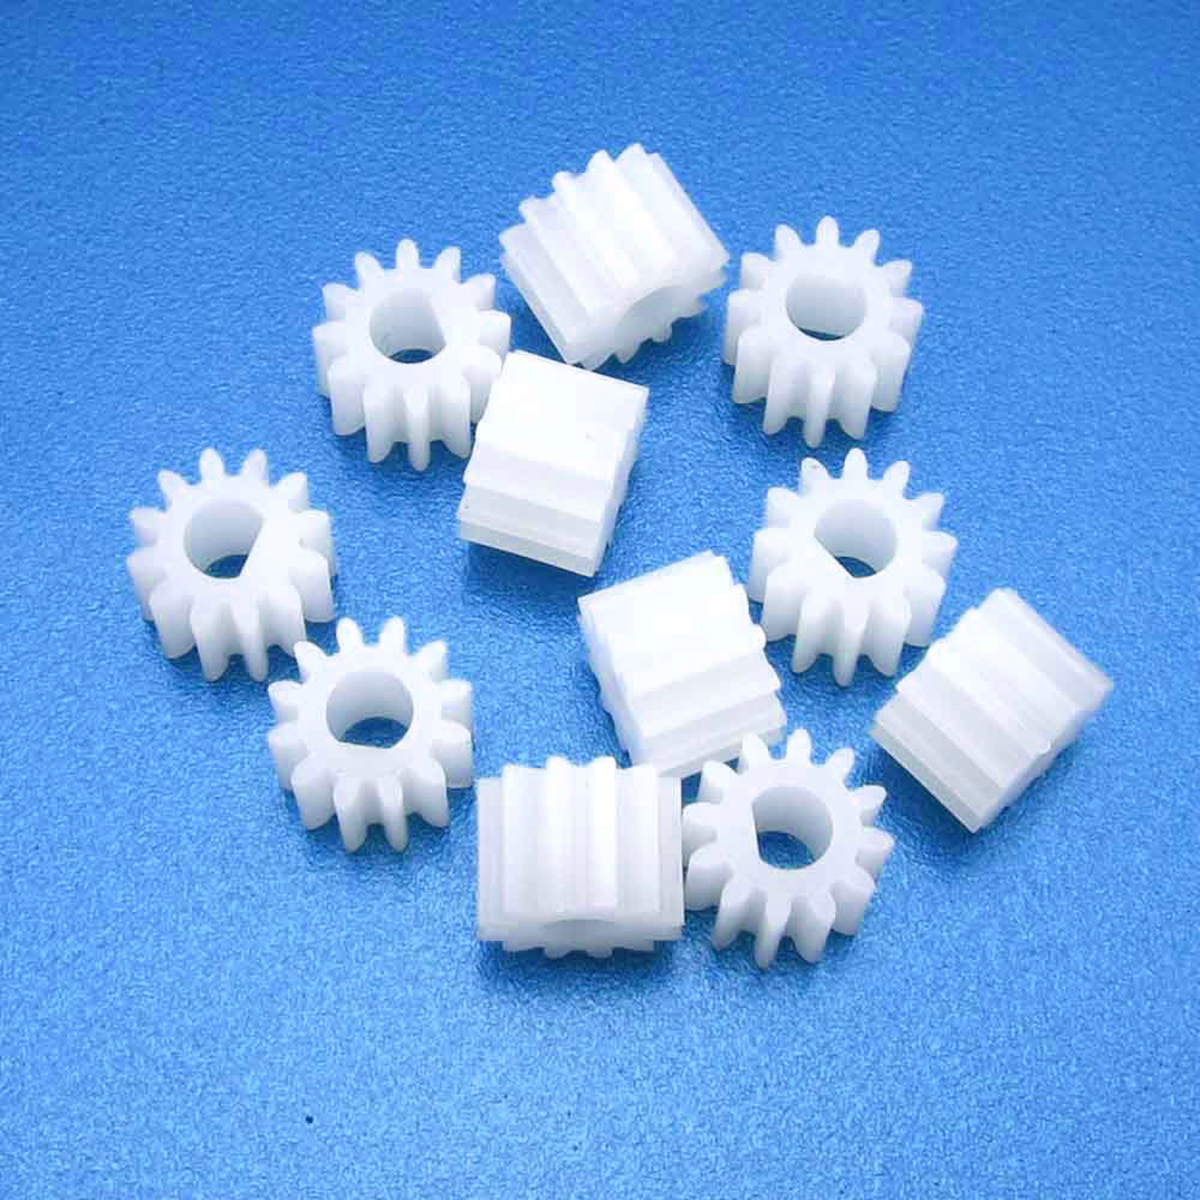 10pcs New D Shape Hole 3mm 12T M0.5 Gear 1012DF 12 Teeth Plastic Gear  For N20 D-Axis Motor DIY Mayitr